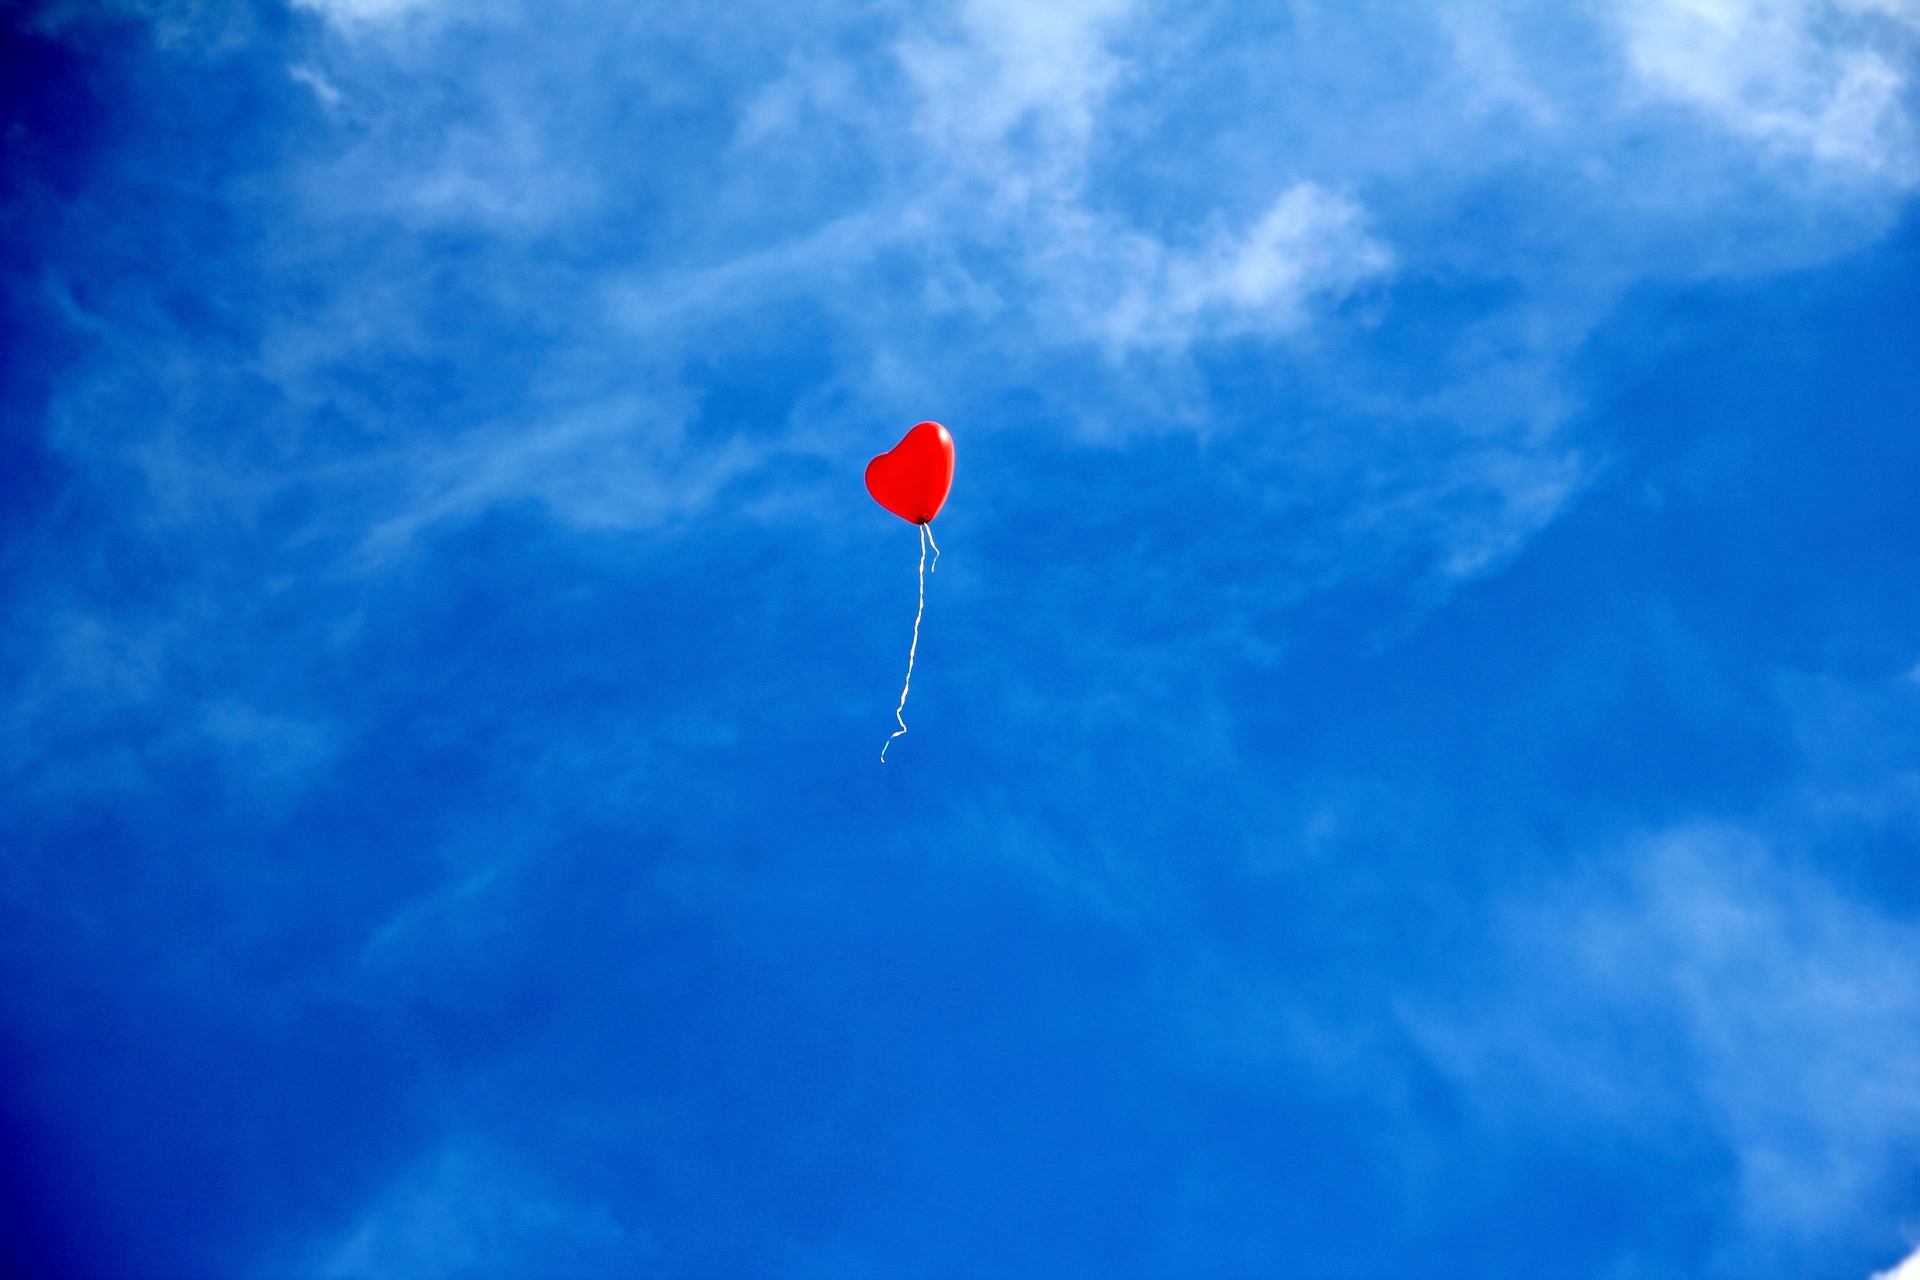 Photo of a red heart shaped balloon in a blue sky